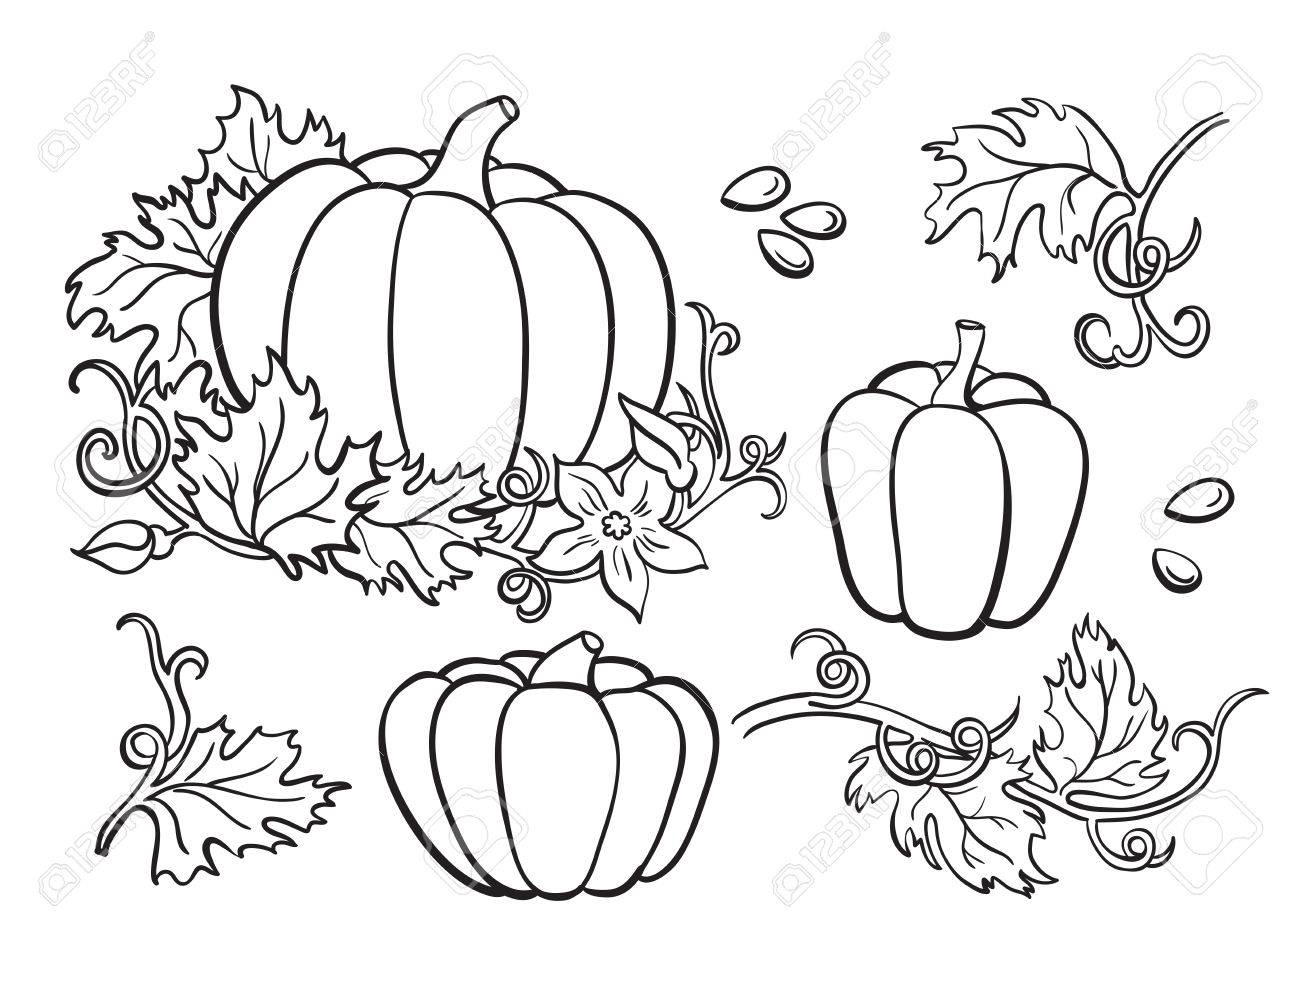 Pumpkin Drawing Outline at GetDrawings.com | Free for personal use ...